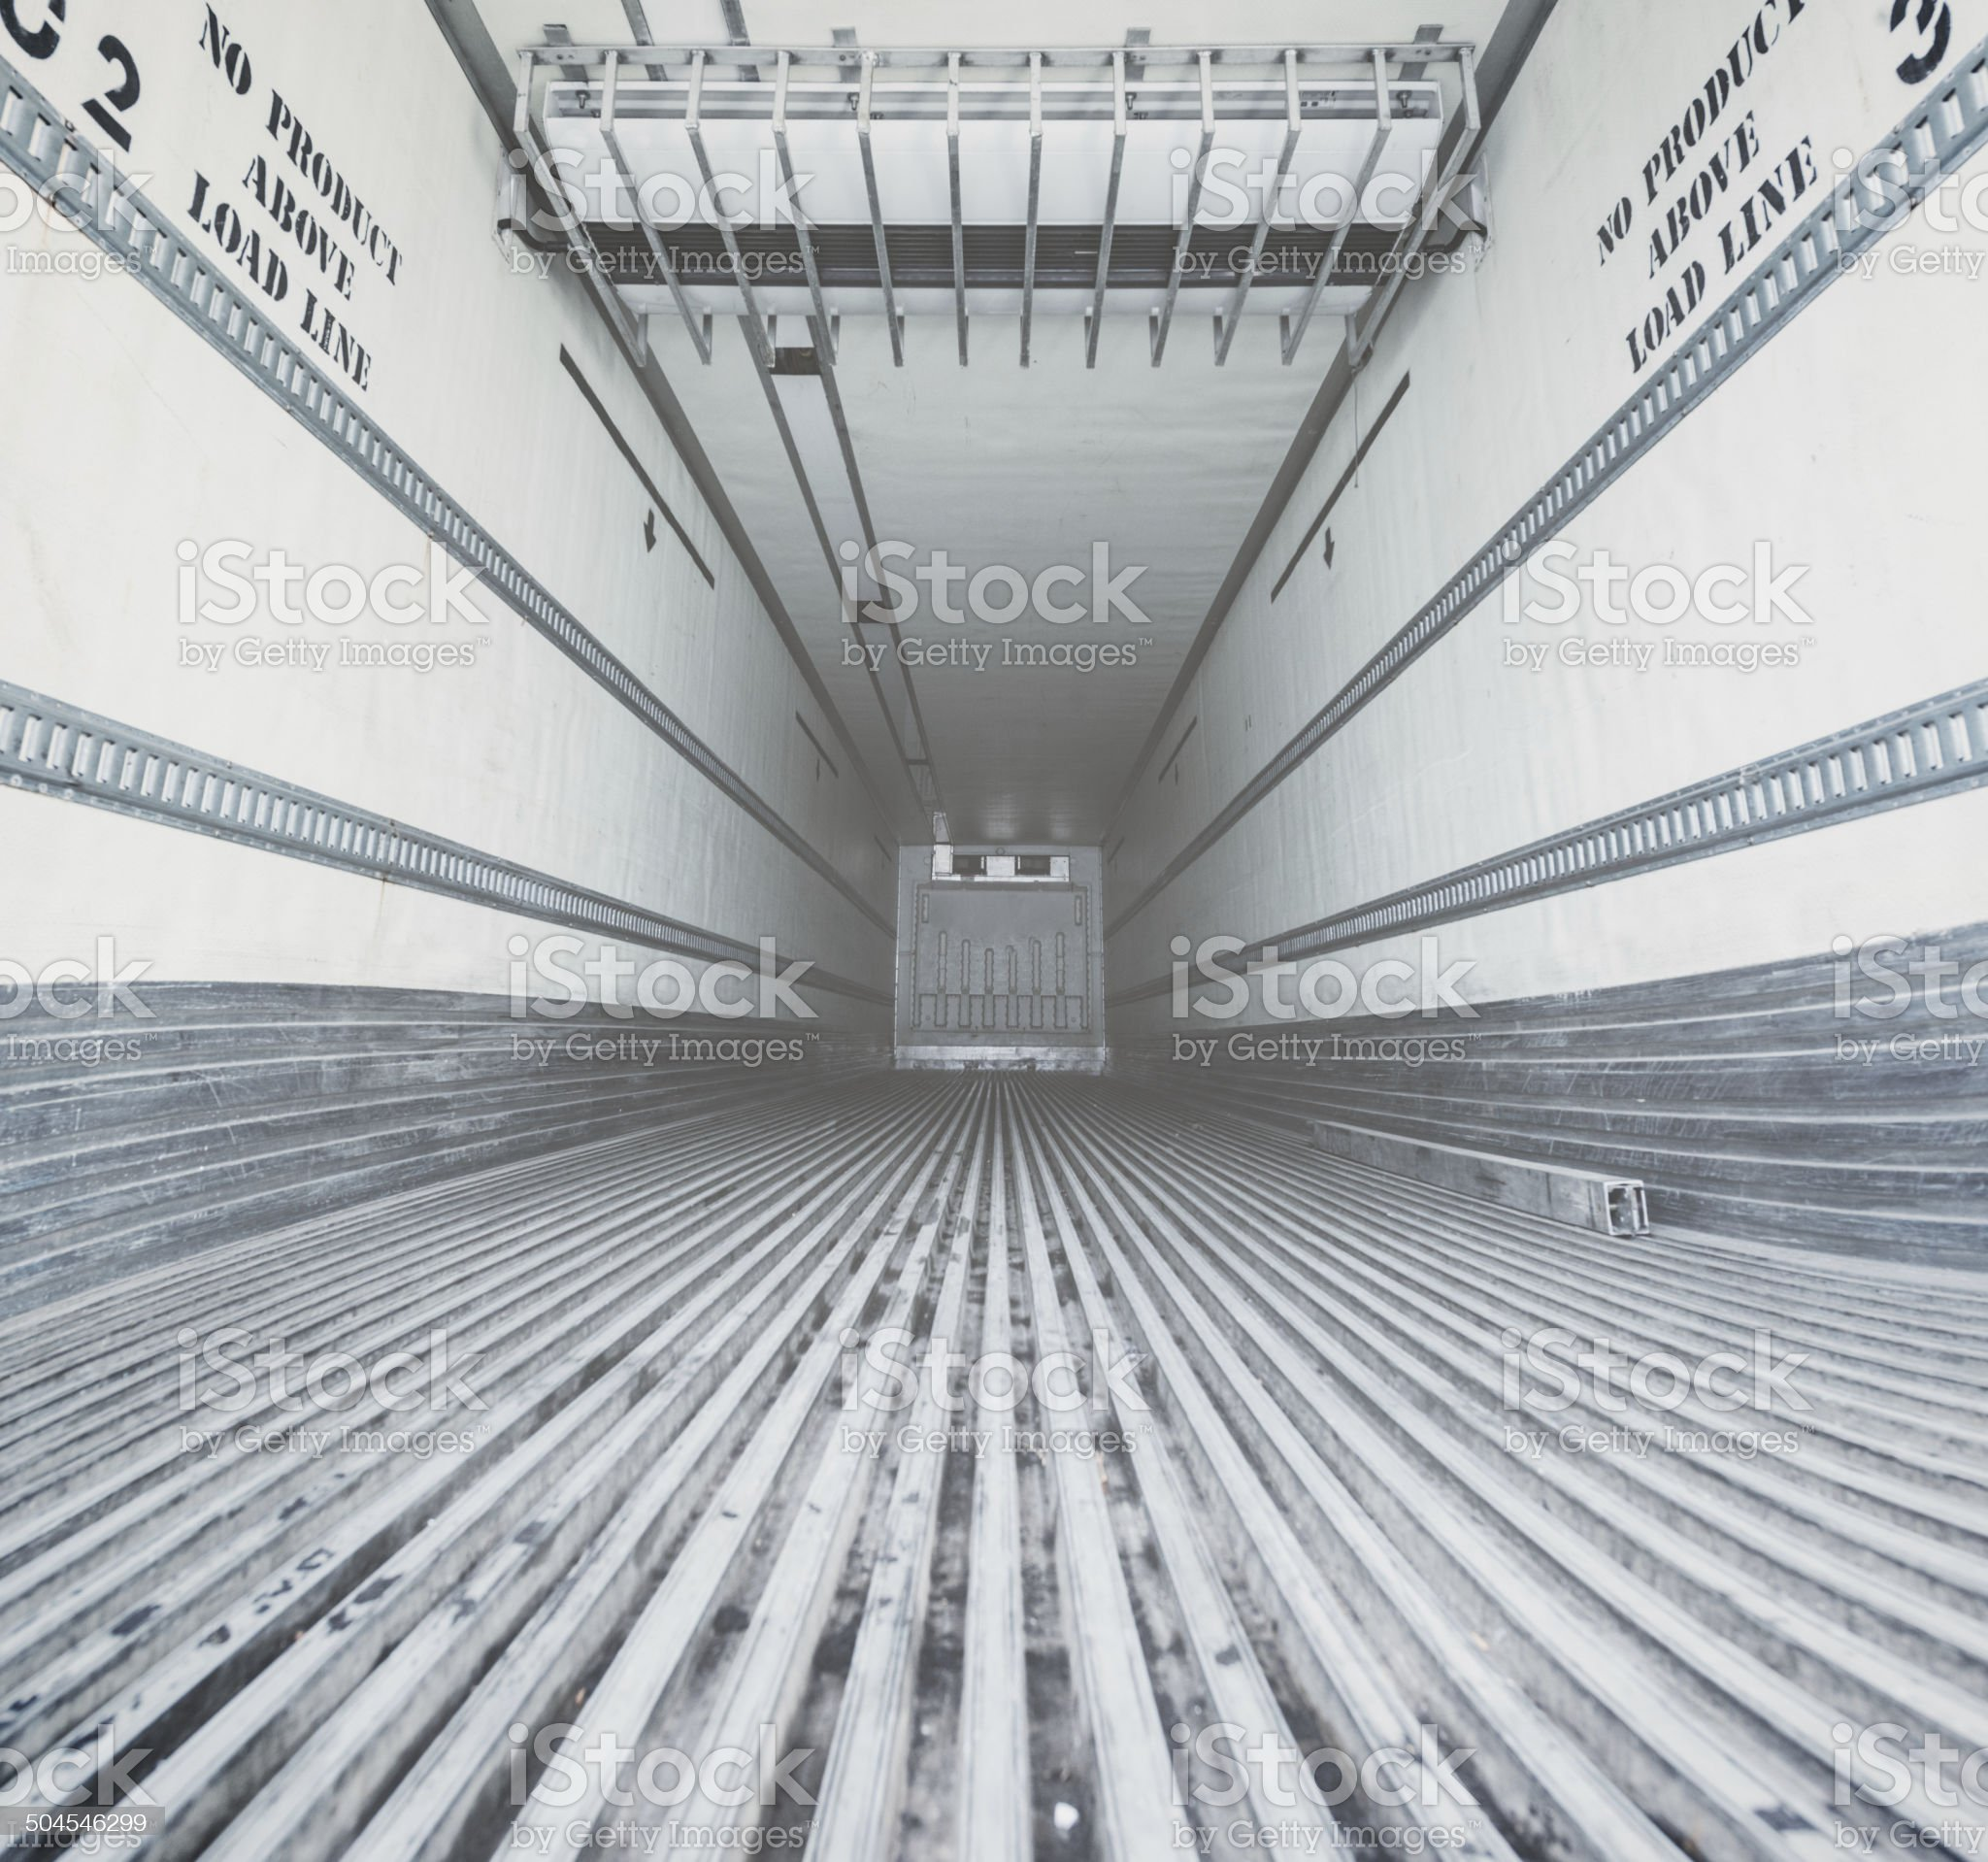 Semi Trailer Interior royalty-free stock photo